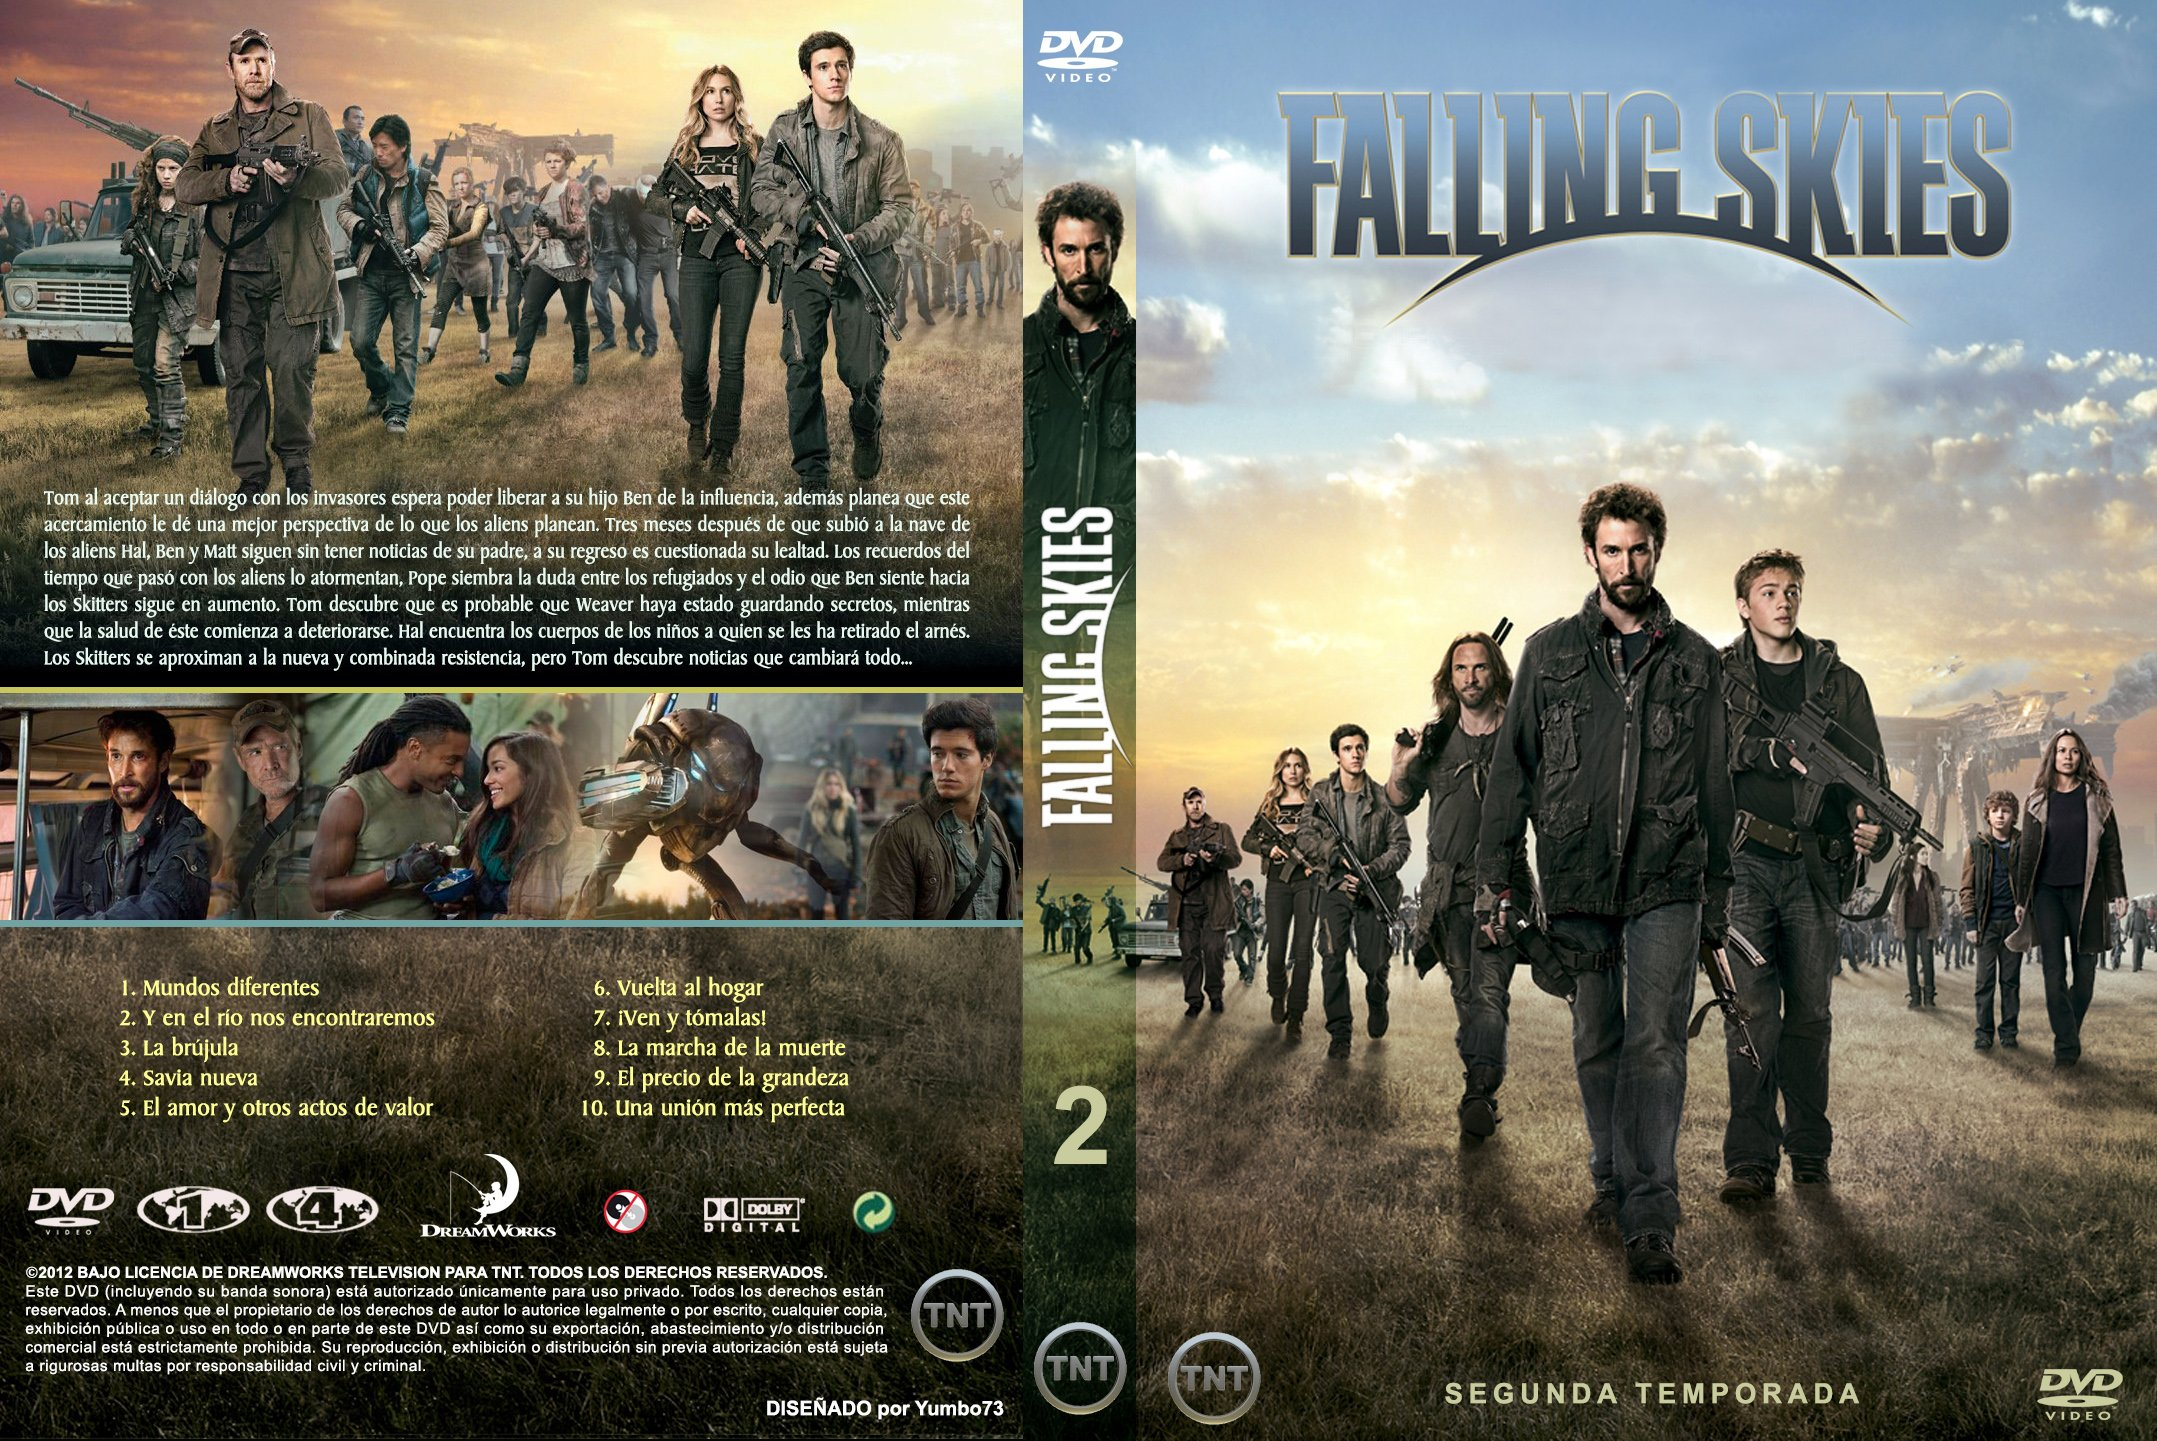 FALLING SKIES action series sci-fi thriller apocalyptic wallpaper ...